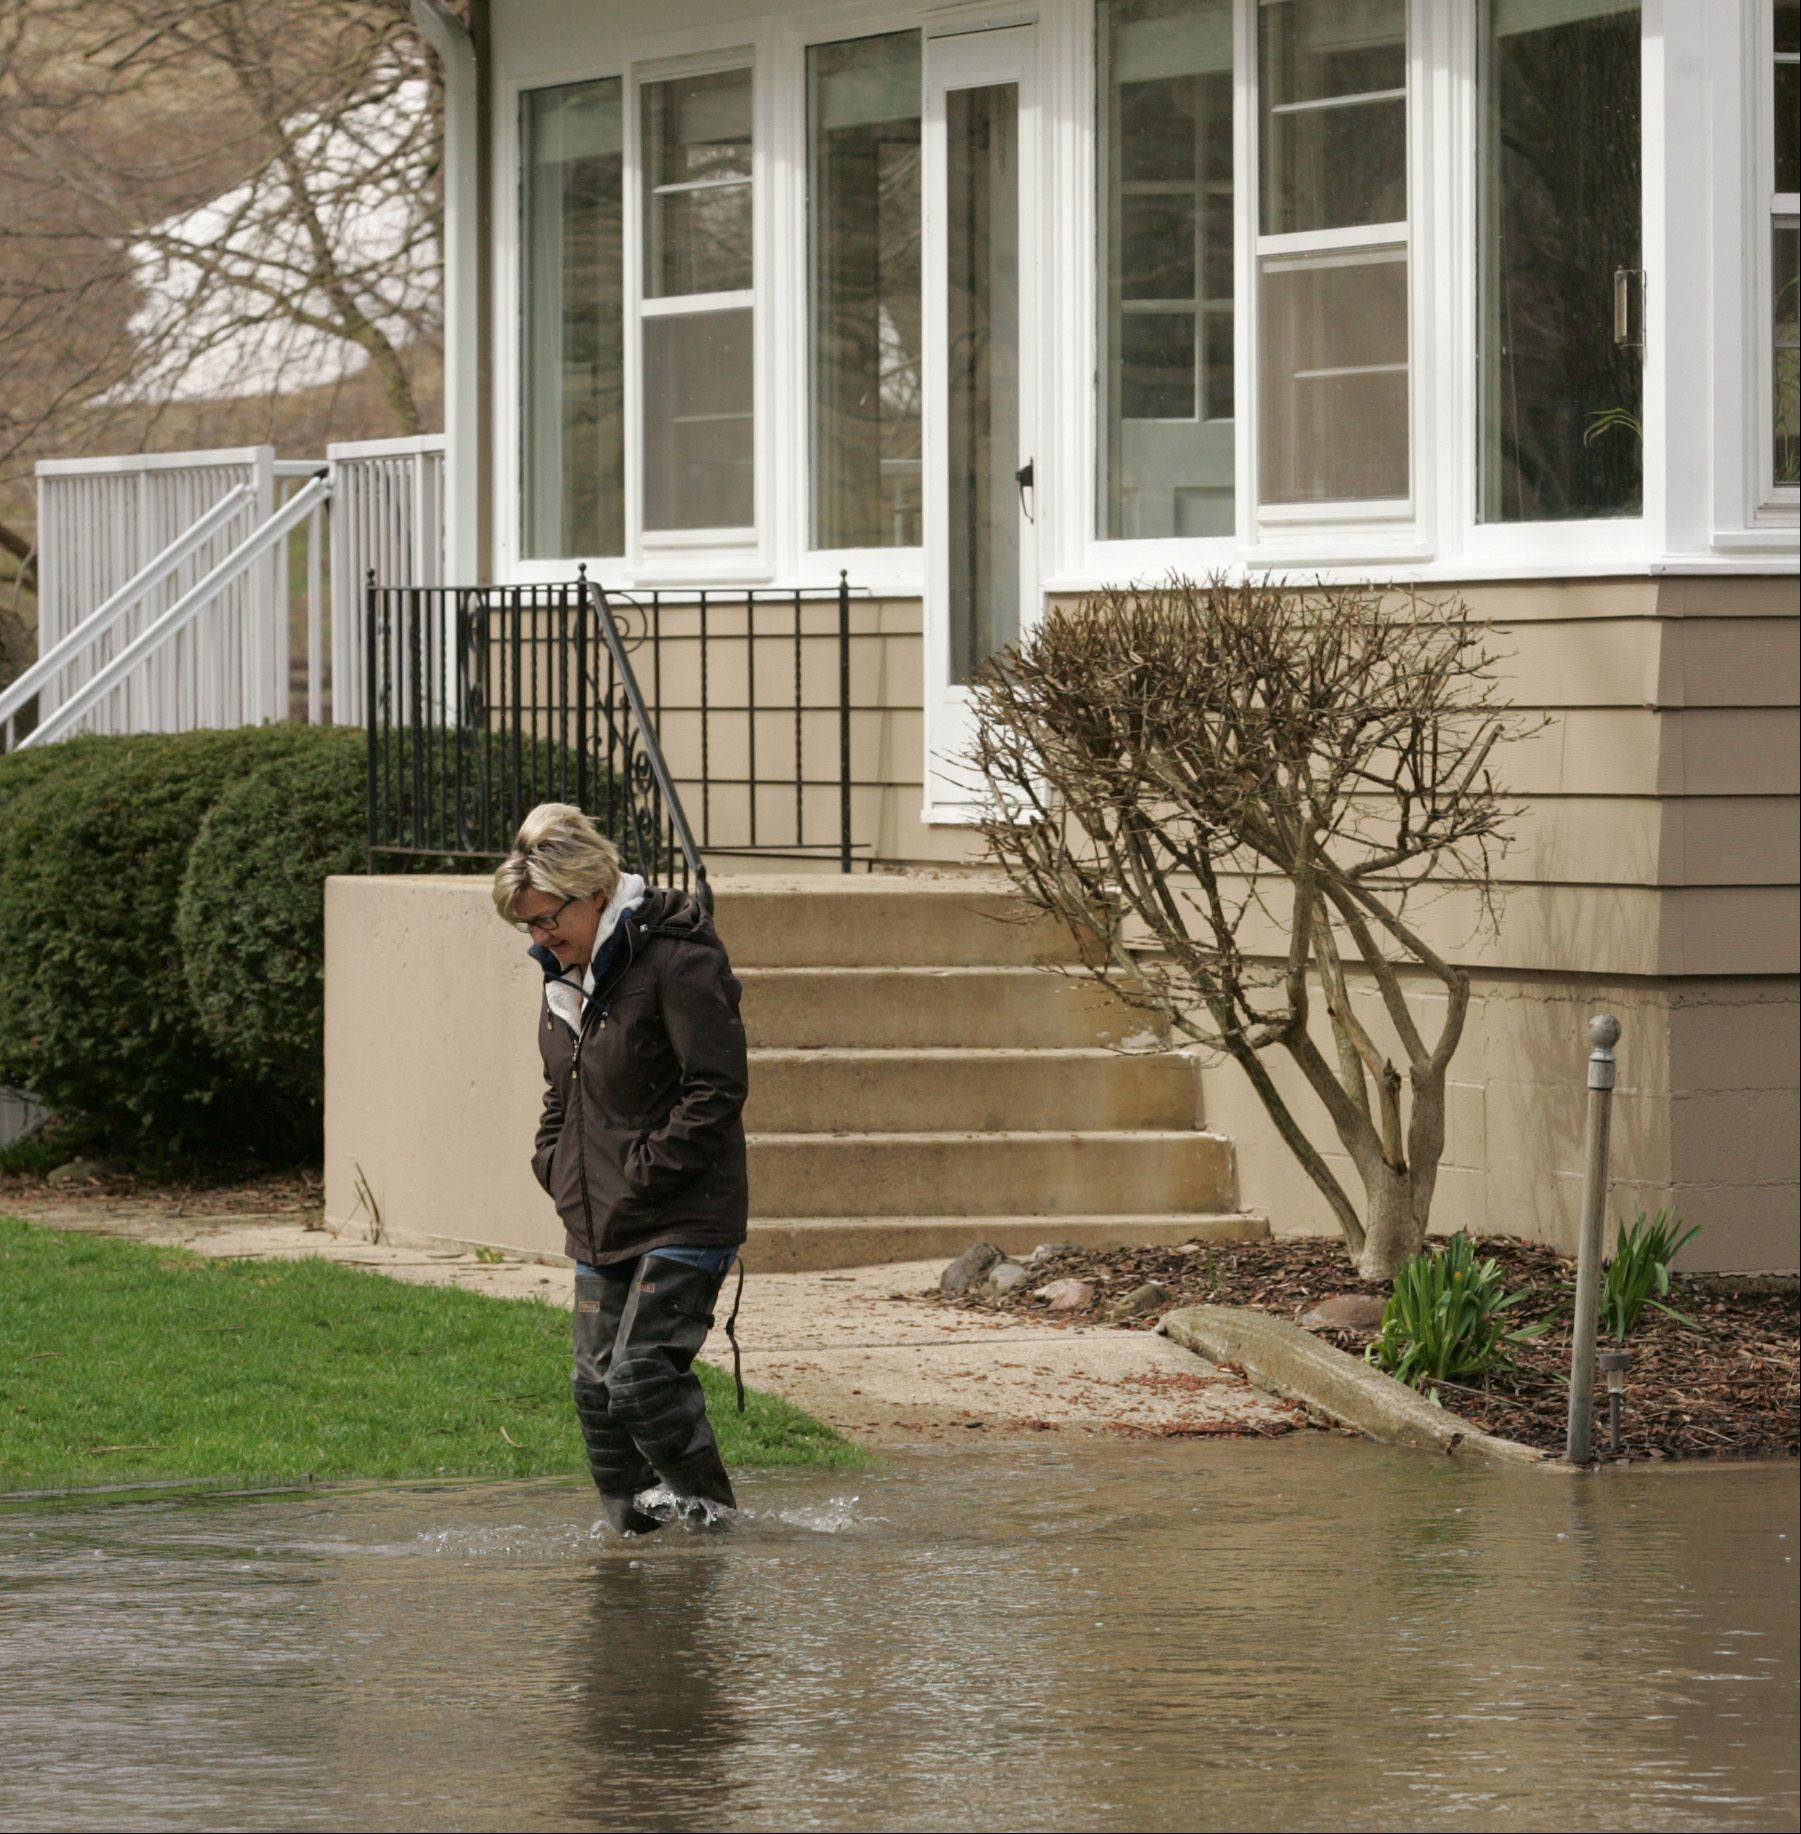 Nan Gagliano walks from her home along Wanaki Trail in Algonquin Friday morning where floodwaters have already surrounded her home. Despite the rising water, Gagliano says there's only moderate seepage in her basement. She and her husband, Nick, were most concerned with protecting the foundation of the home from the river's strong current.